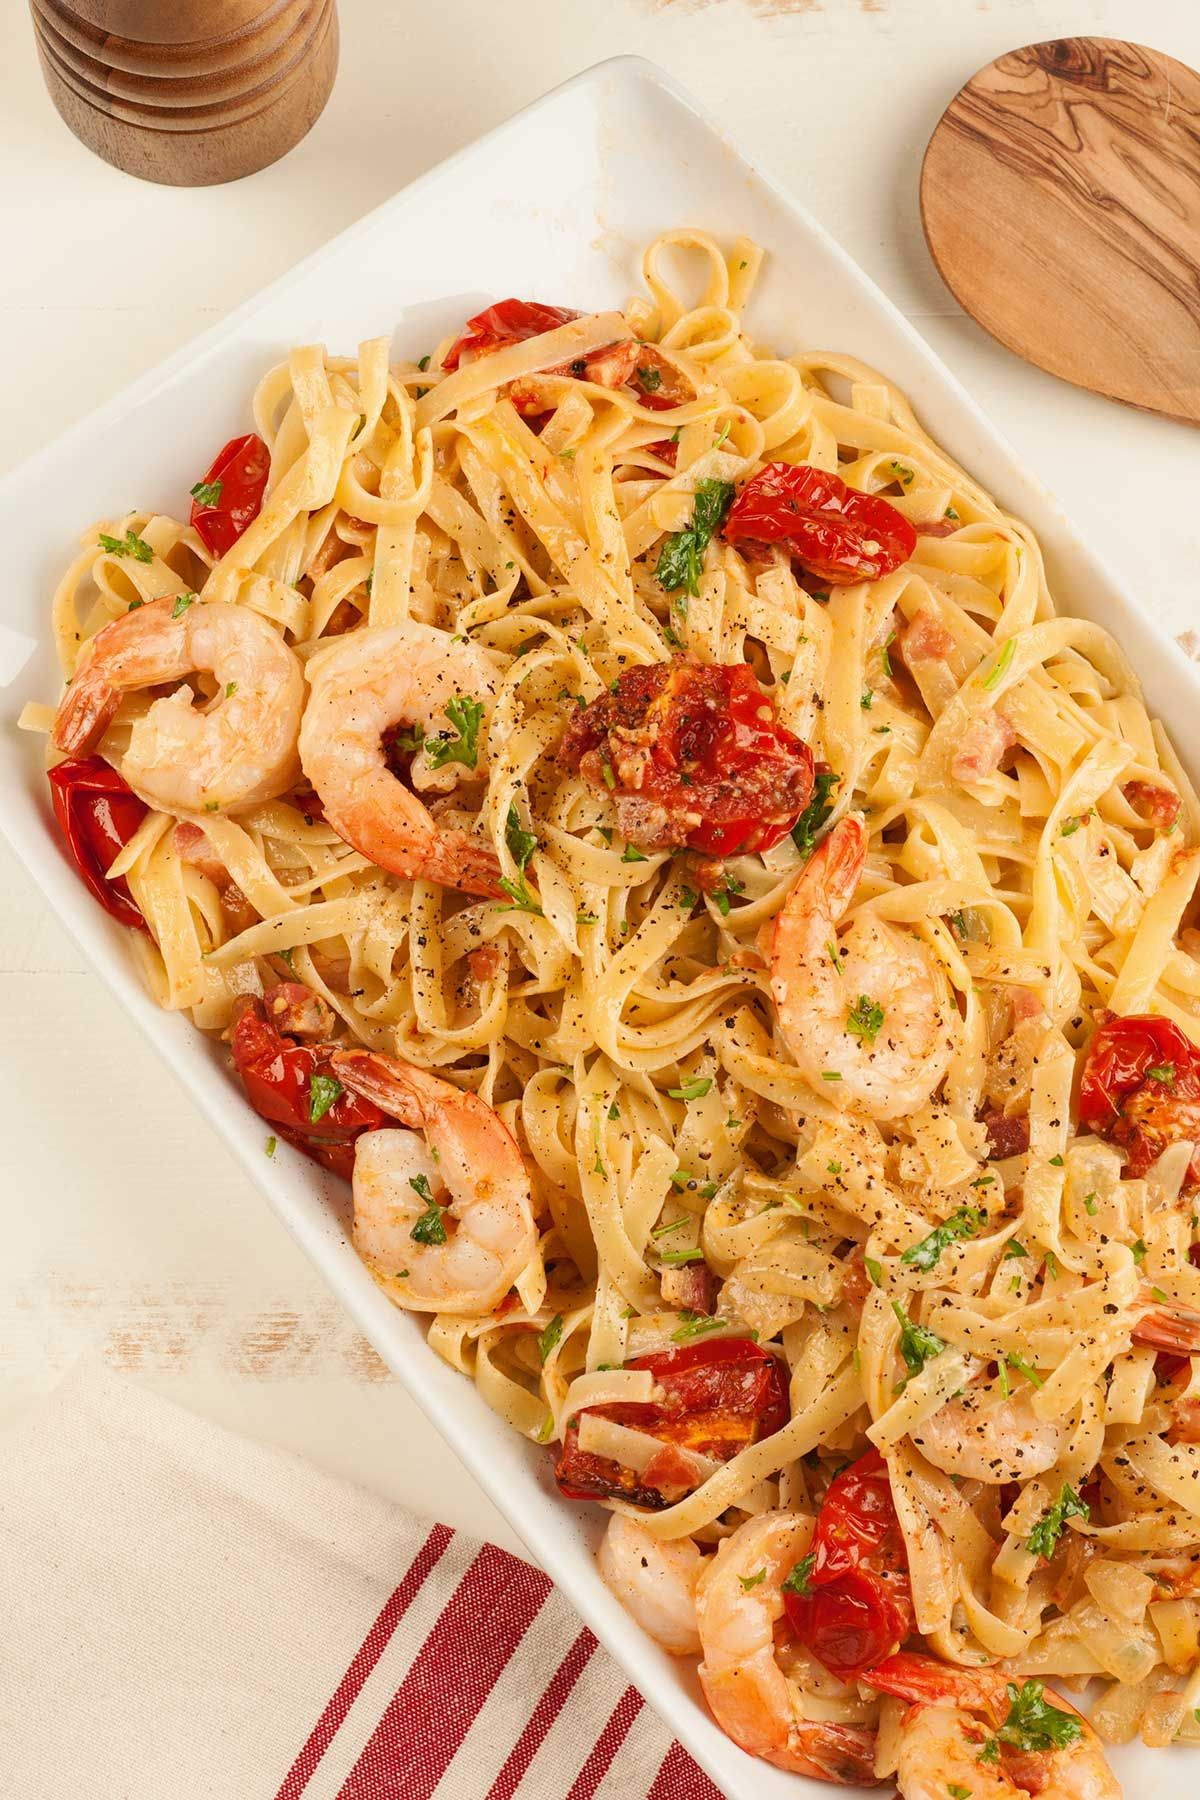 Fettuccine with Pancetta, Roasted Tomatoes and Shrimp: This simple, flavorful pasta dish made with sautéed shrimp, diced pancetta and roasted tomatoes can be served as a weeknight dinner or casual company meal.